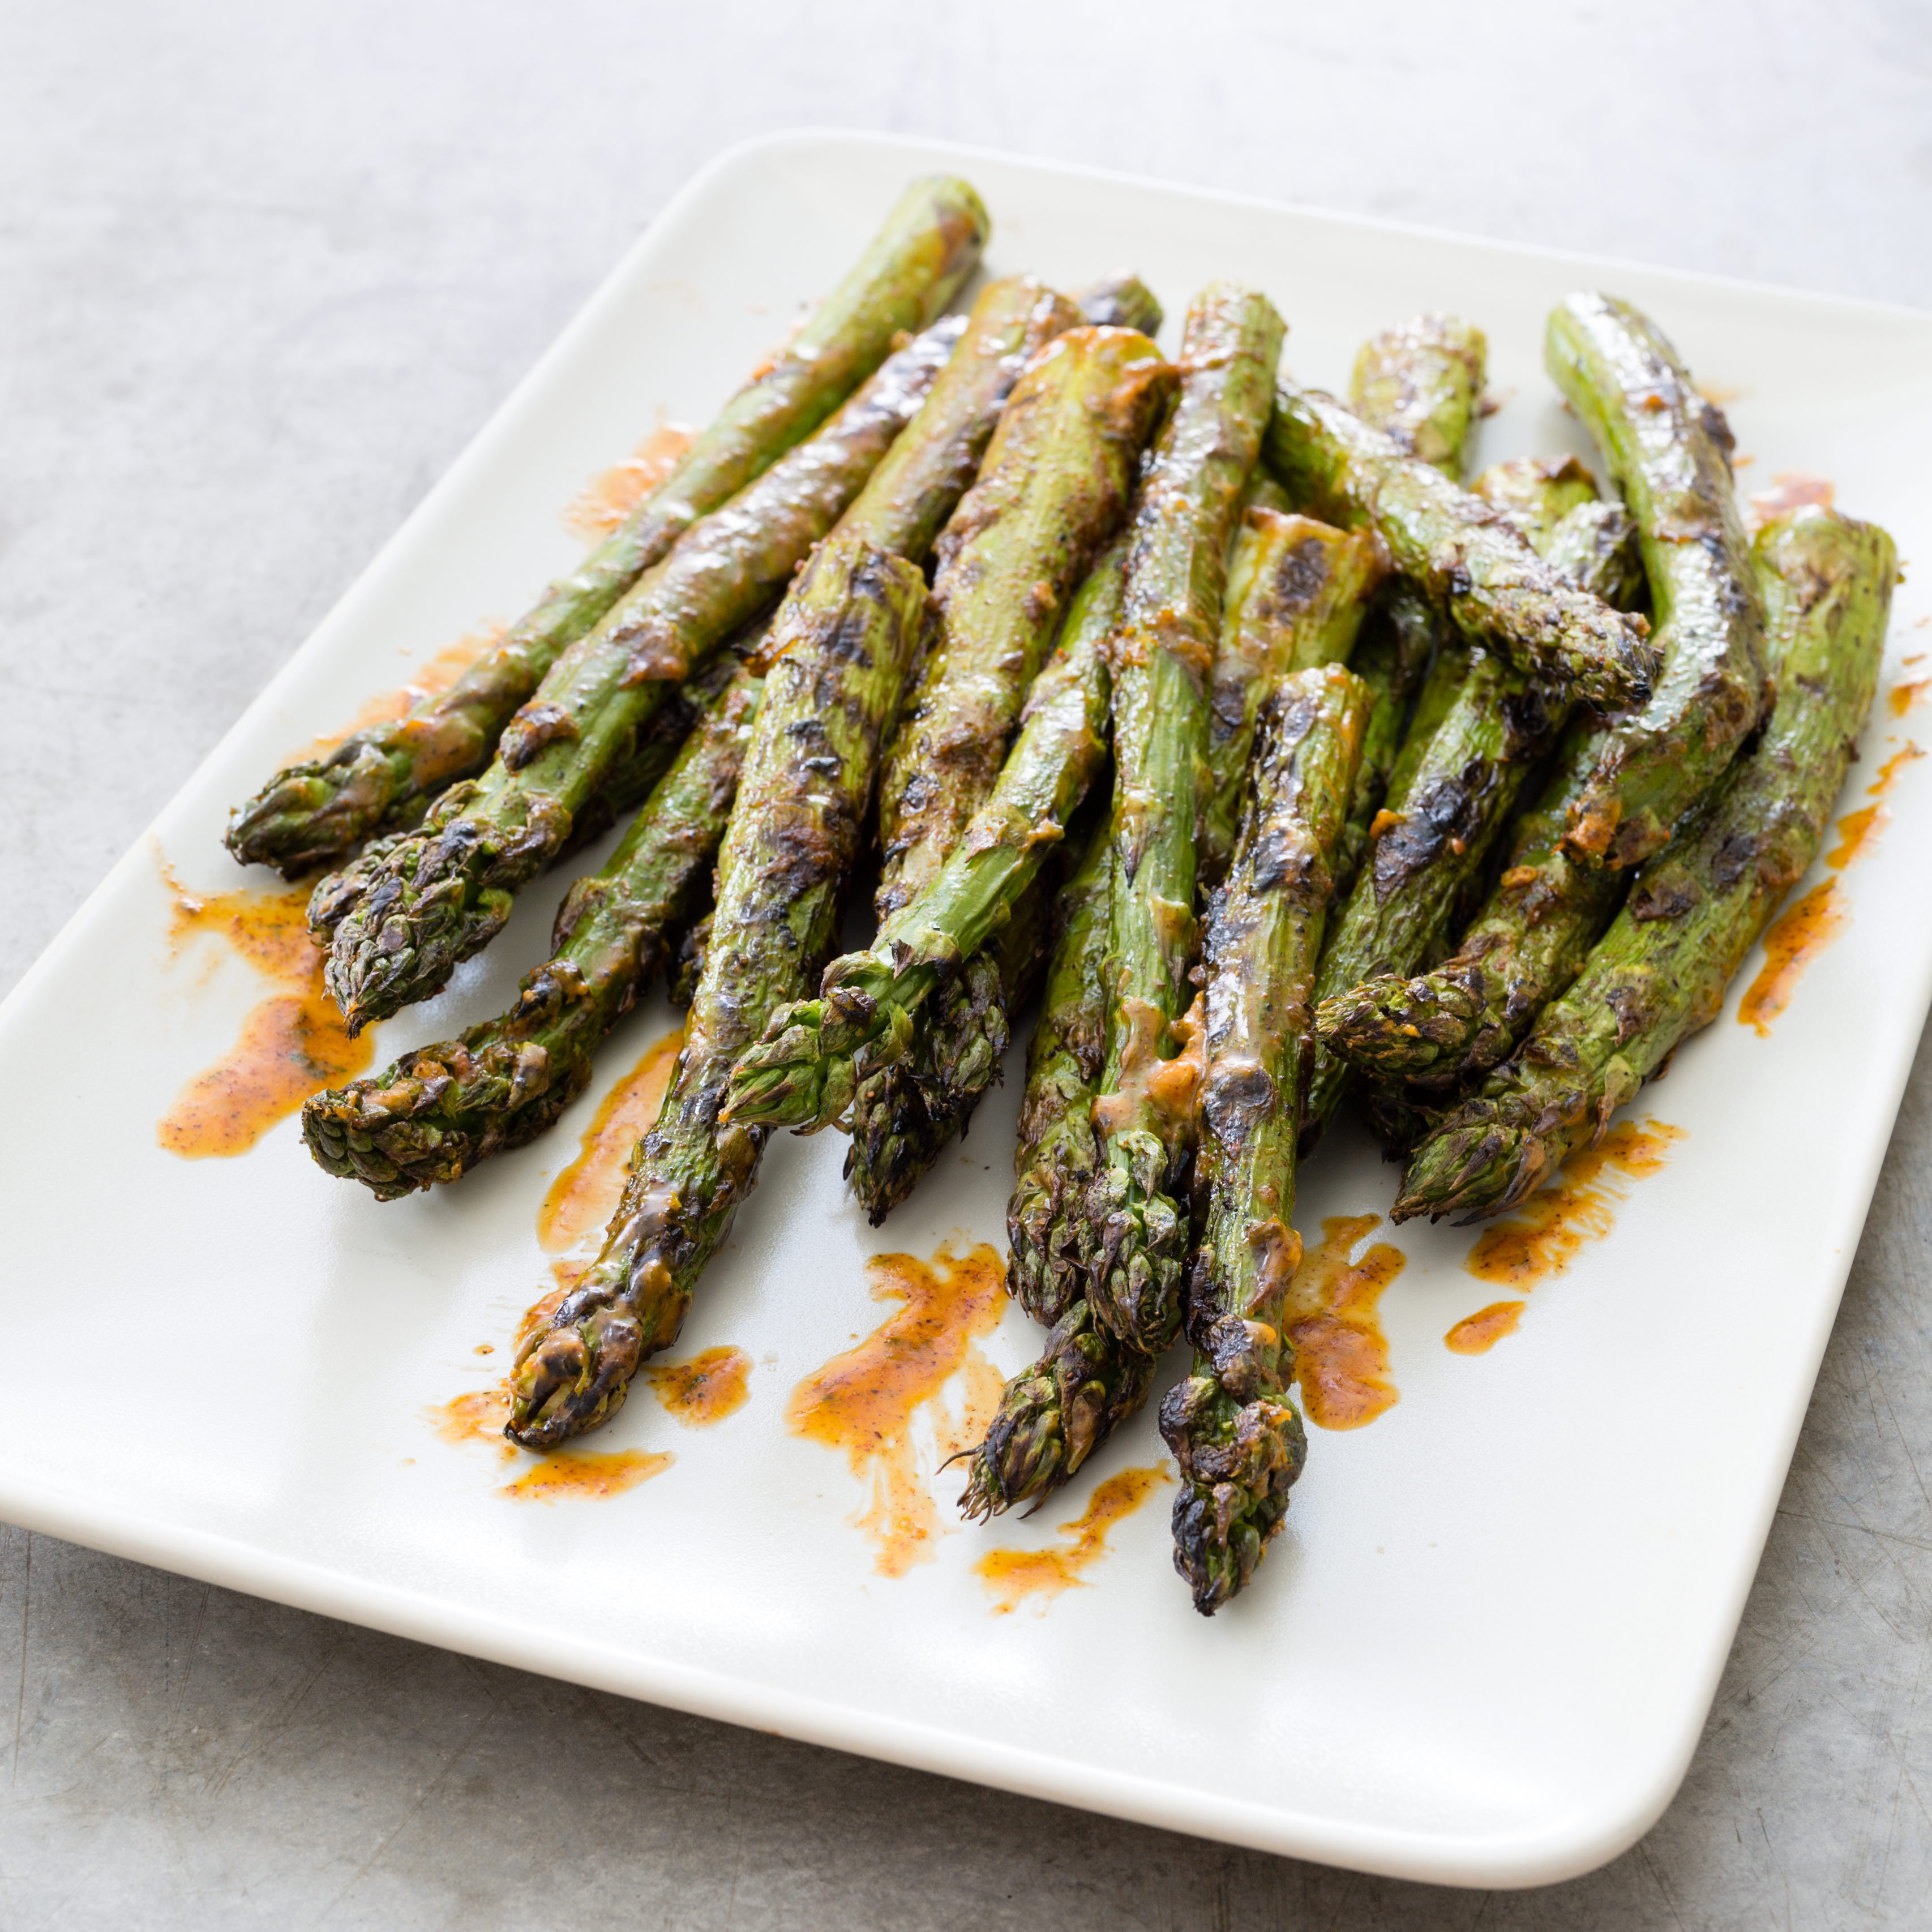 Grilled Asparagus With Garlic Butter